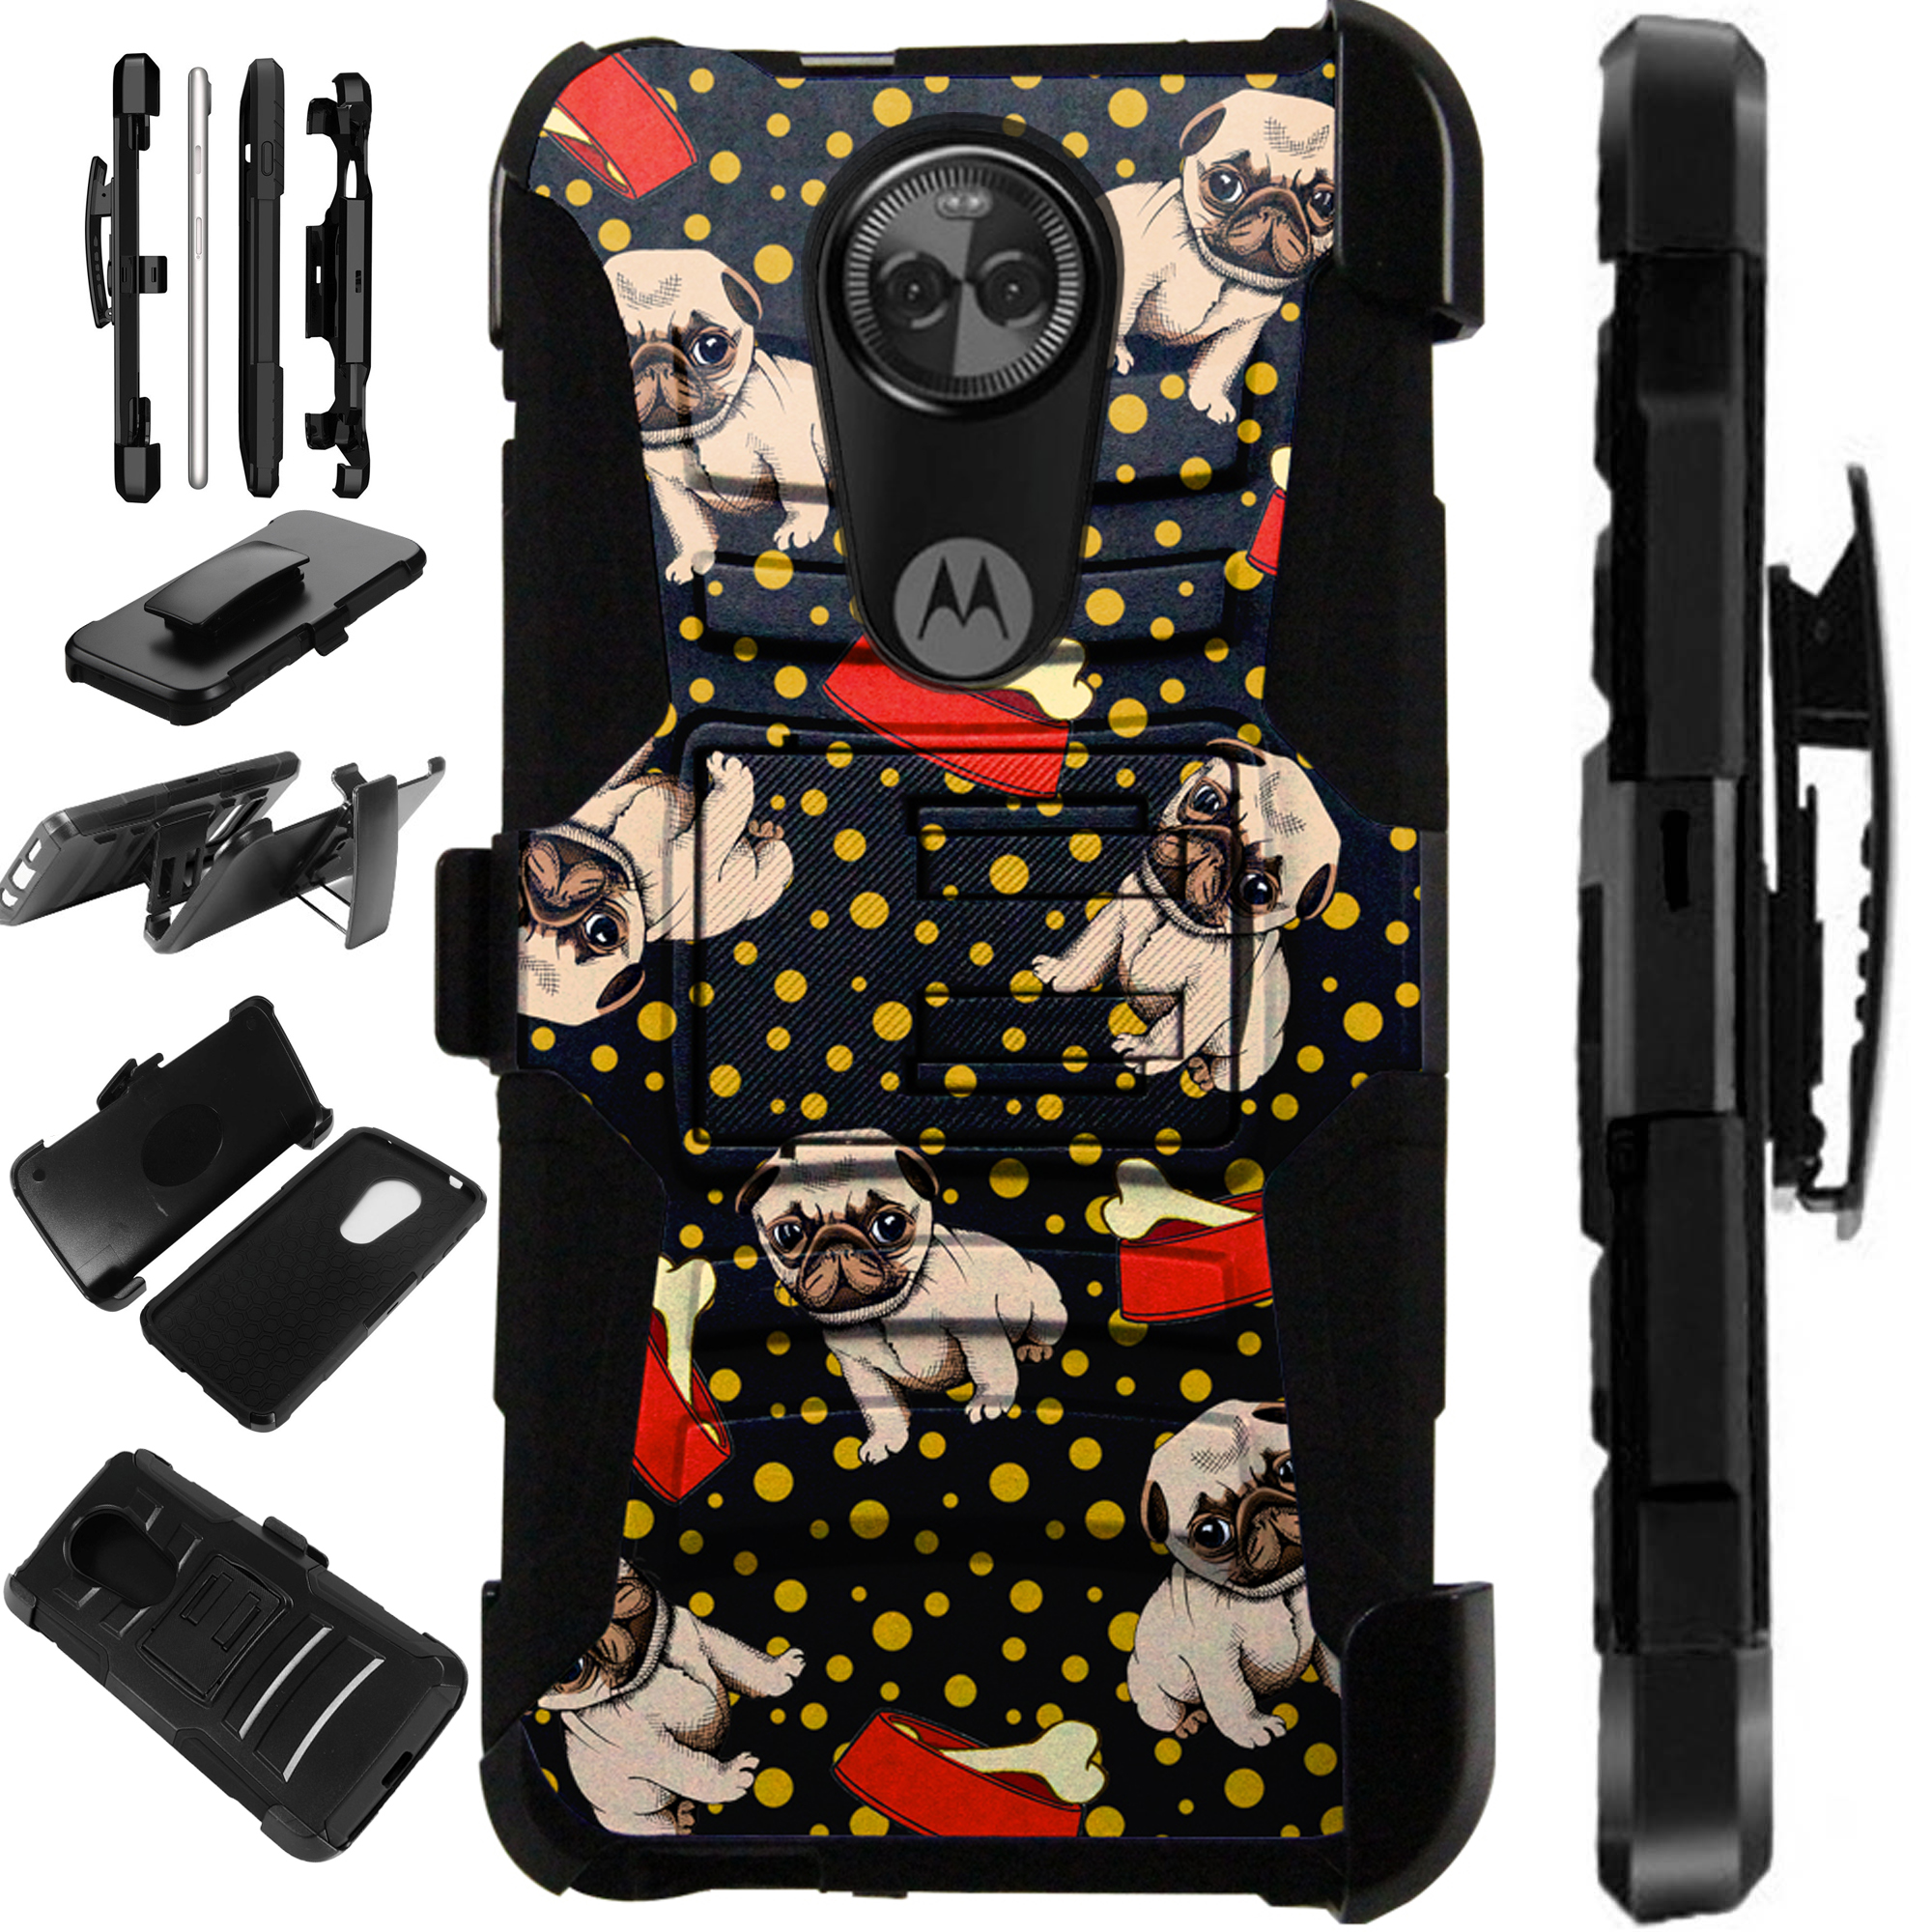 For Motorola Moto G6 Play   Moto G6 Forge Case Armor Hybrid Silicone Cover Stand LuxGuard Holster (Pug Bone)